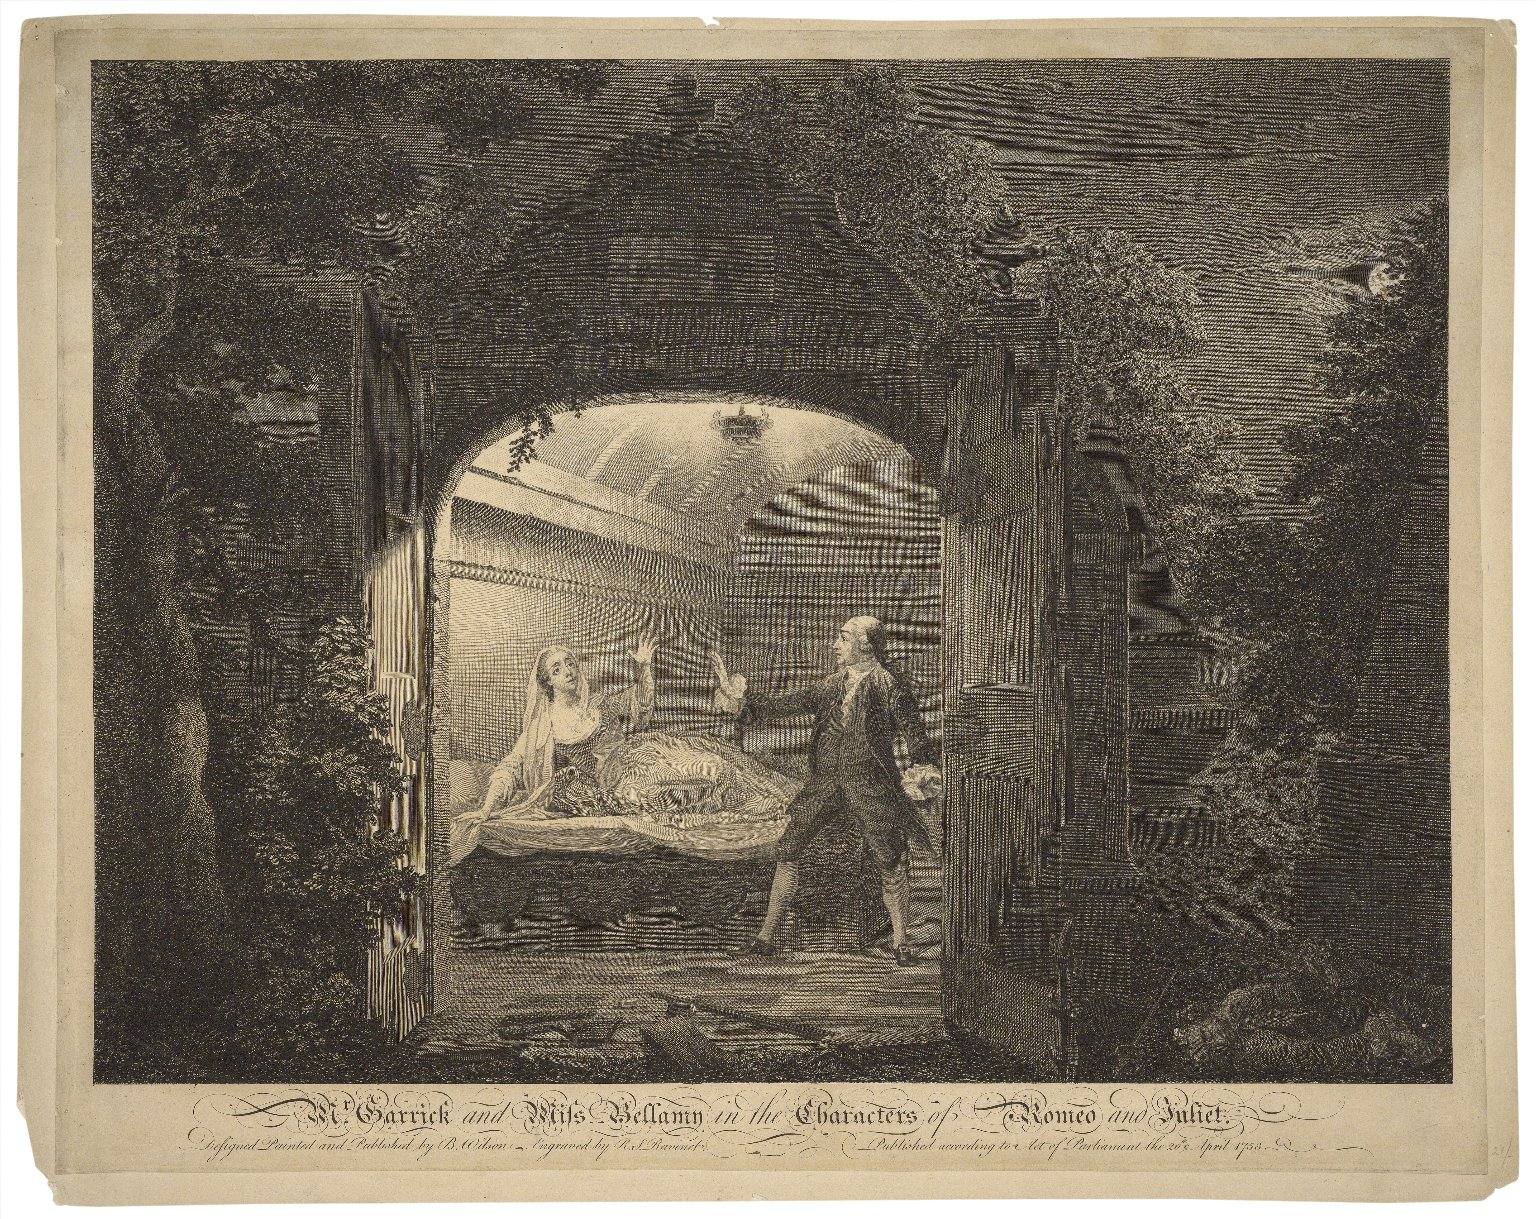 Mr. Garrick and Miss Bellamy in the characters of Romeo and Juliet [Romeo and Juliet. Act V, scene 3] [graphic] / designed, painted, and published by B. Wilson ; engraved by R.S. Ravenet [sic].